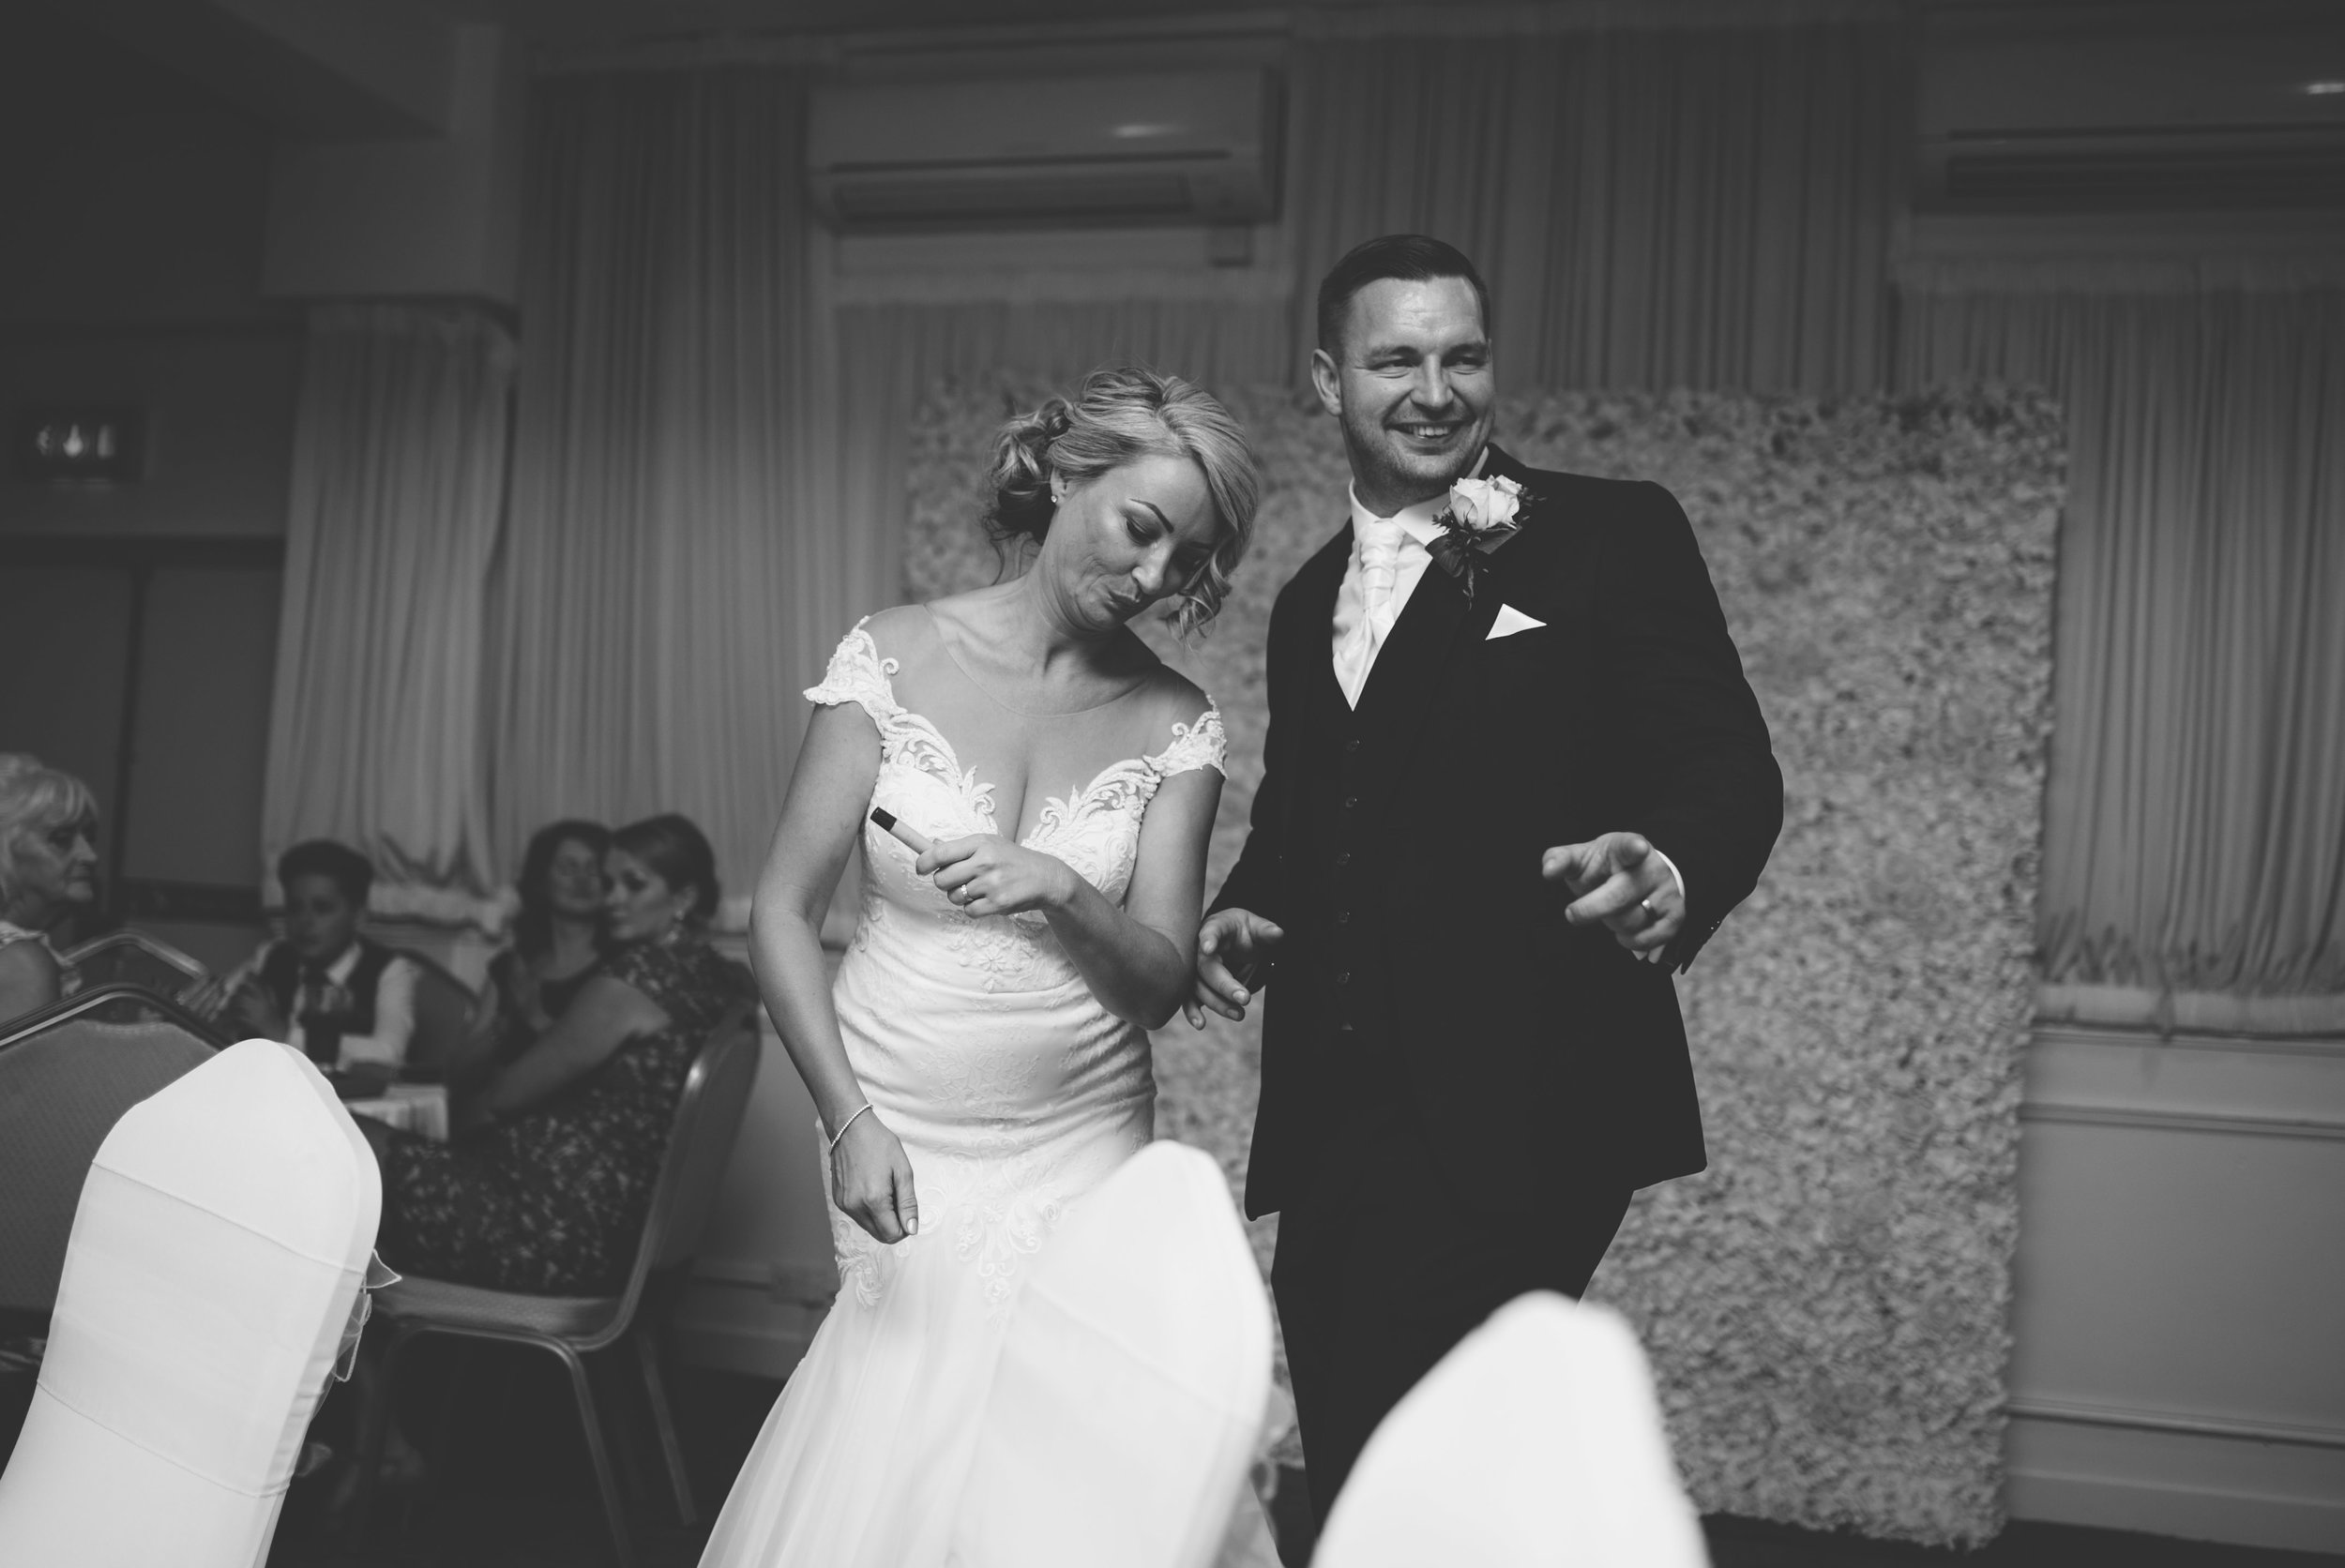 Wedding+photos+at+st+georges (32 of 39).jpg